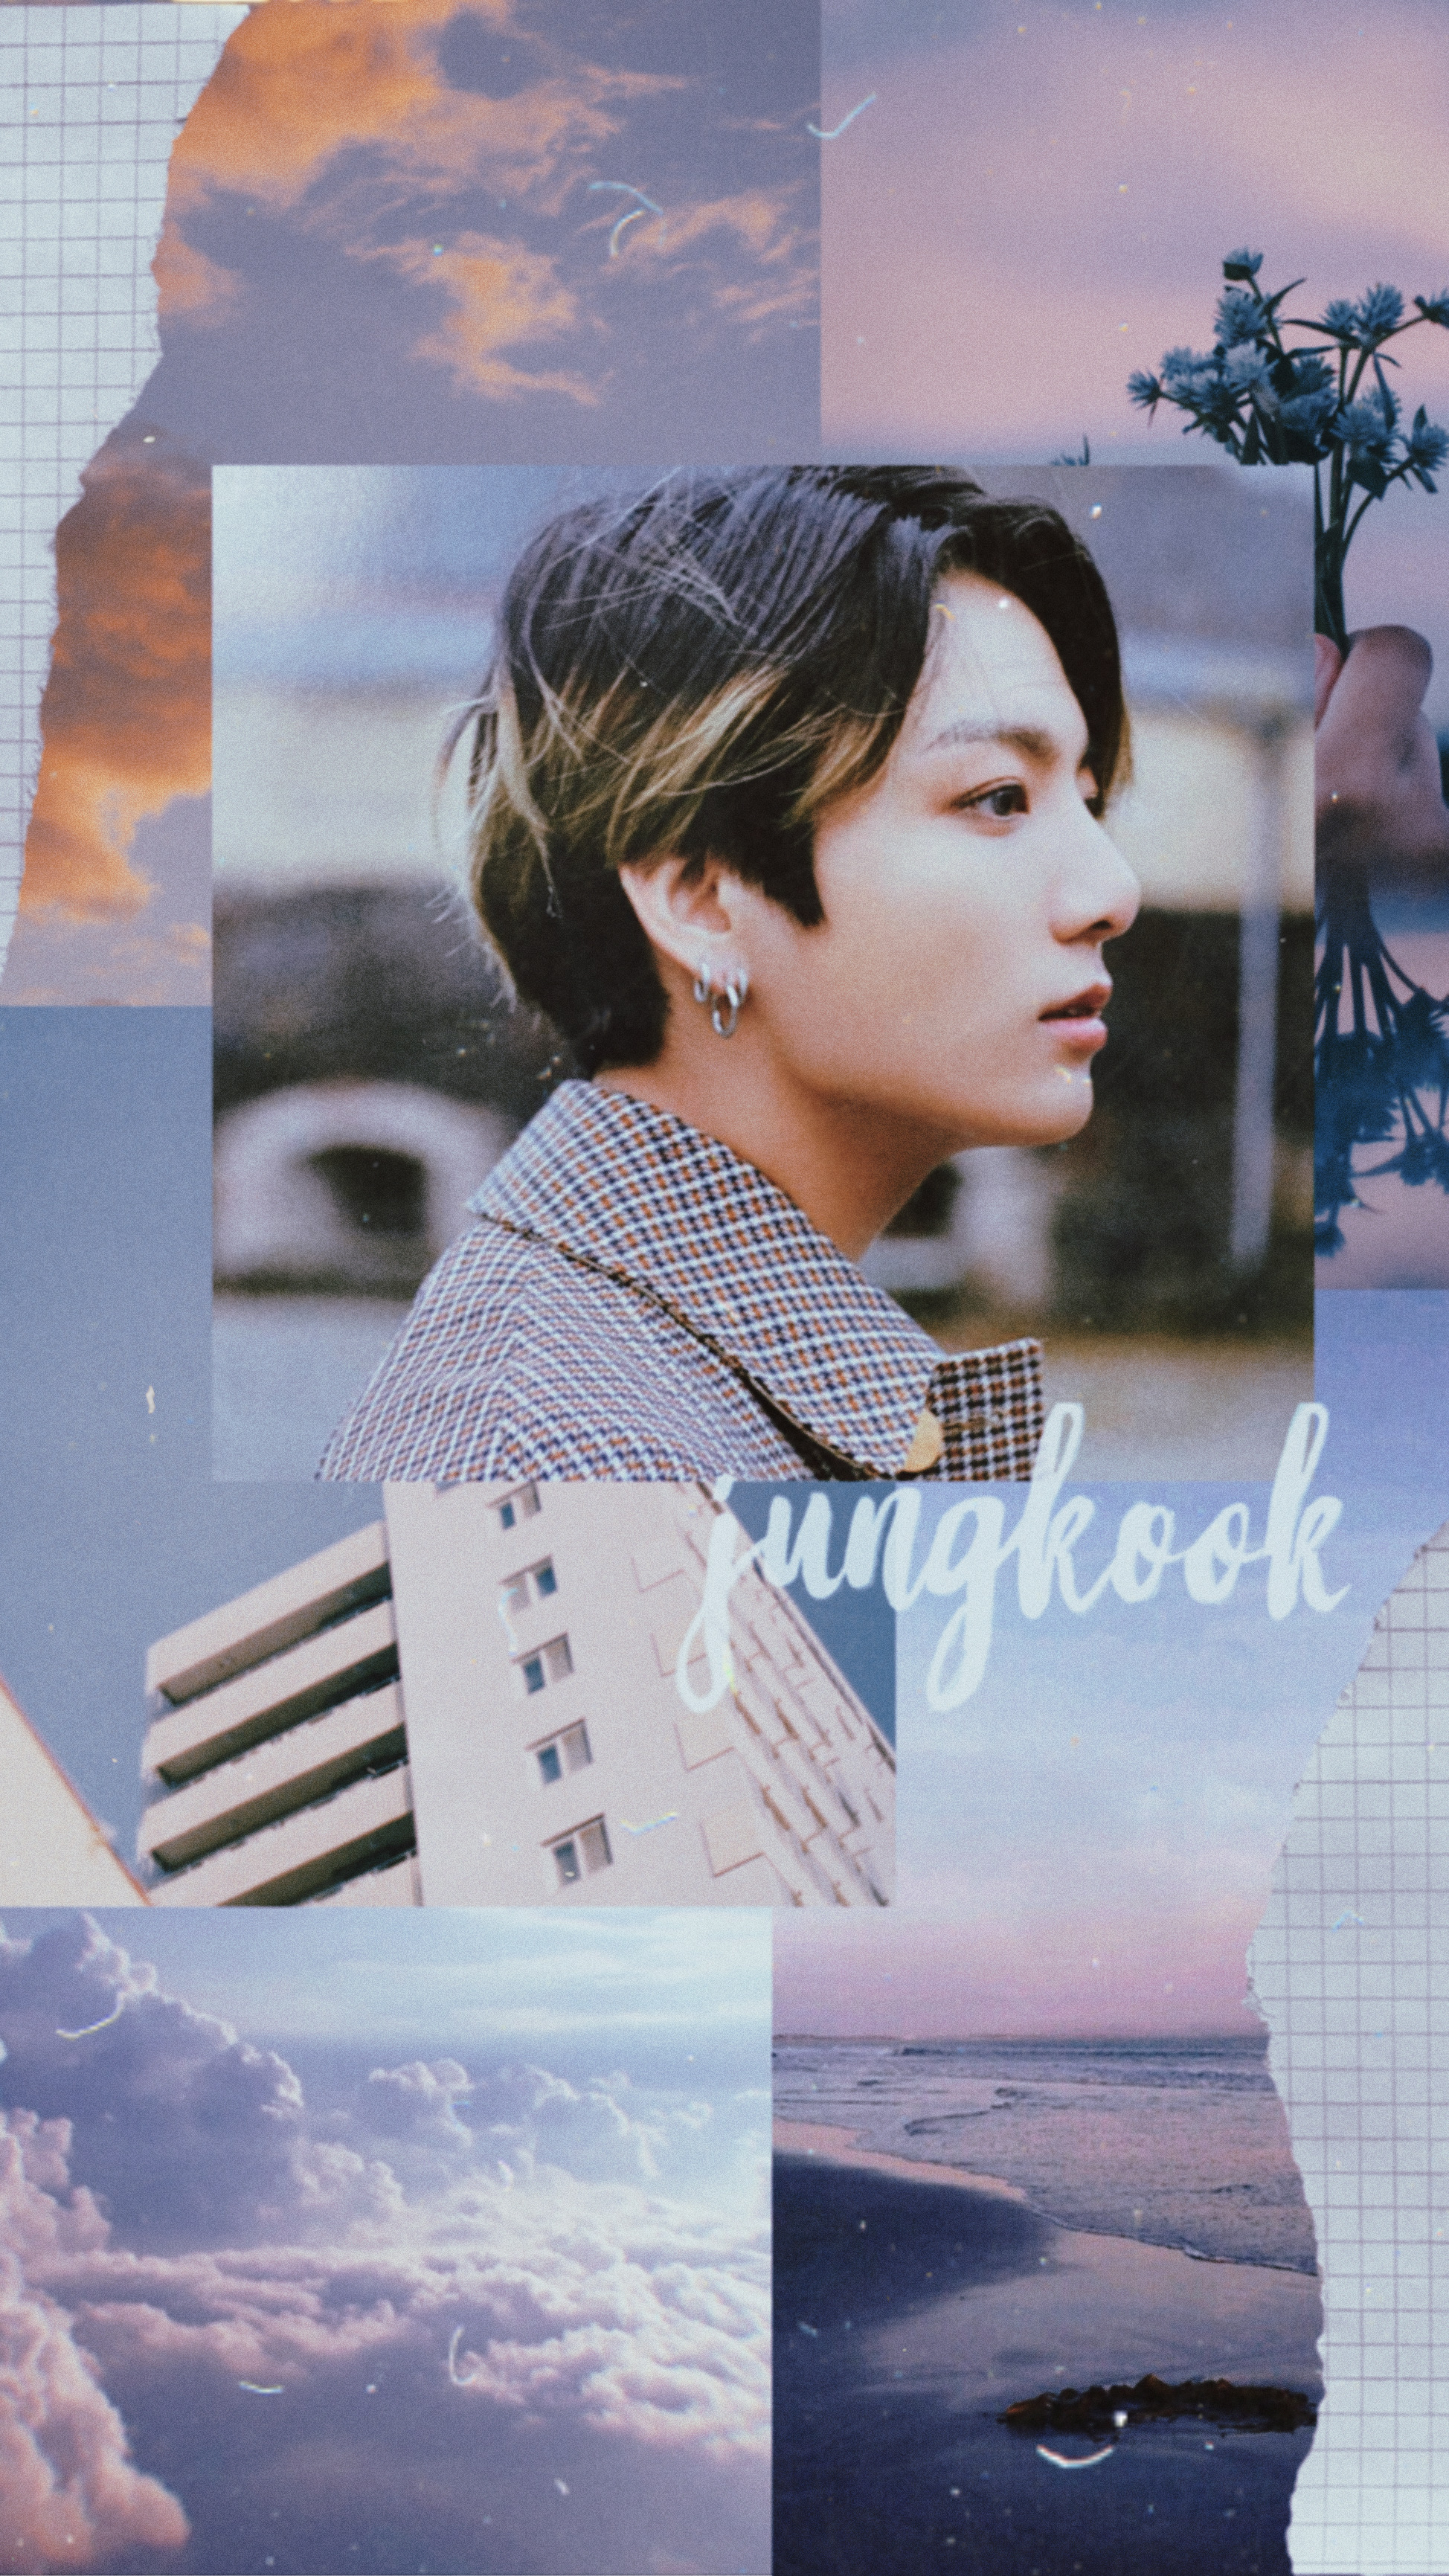 Freetoedit Wallpaper Aesthetic Jungkook Bts Collage